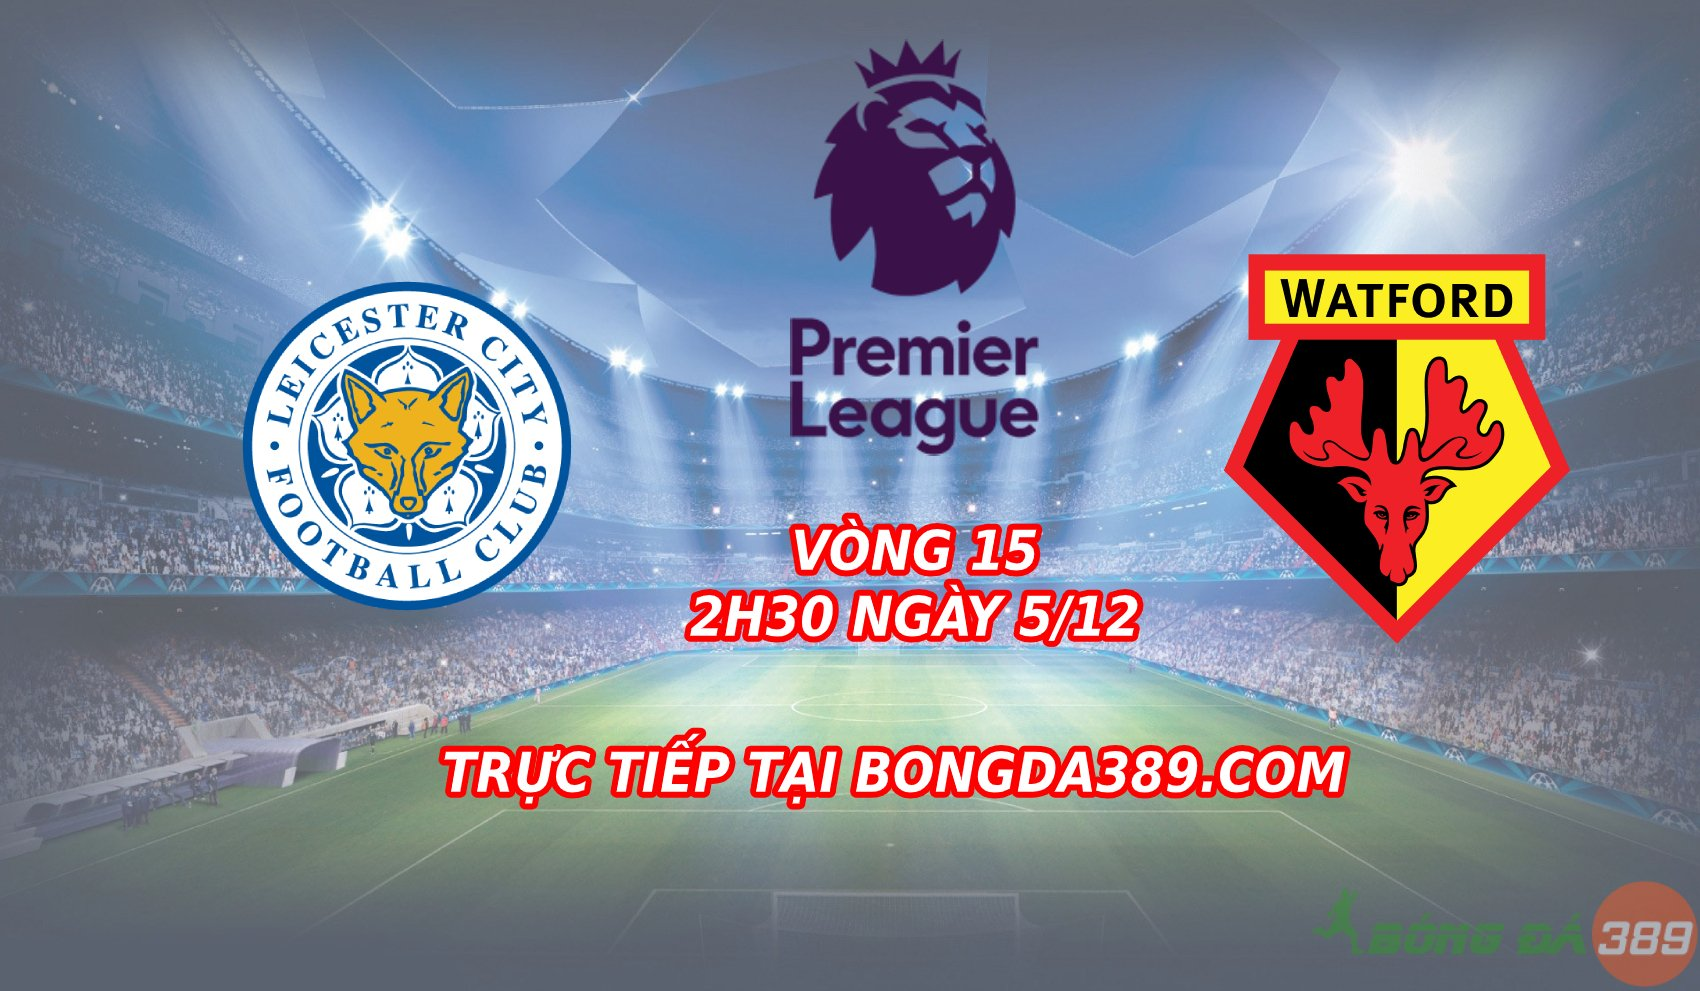 leicester vs watford